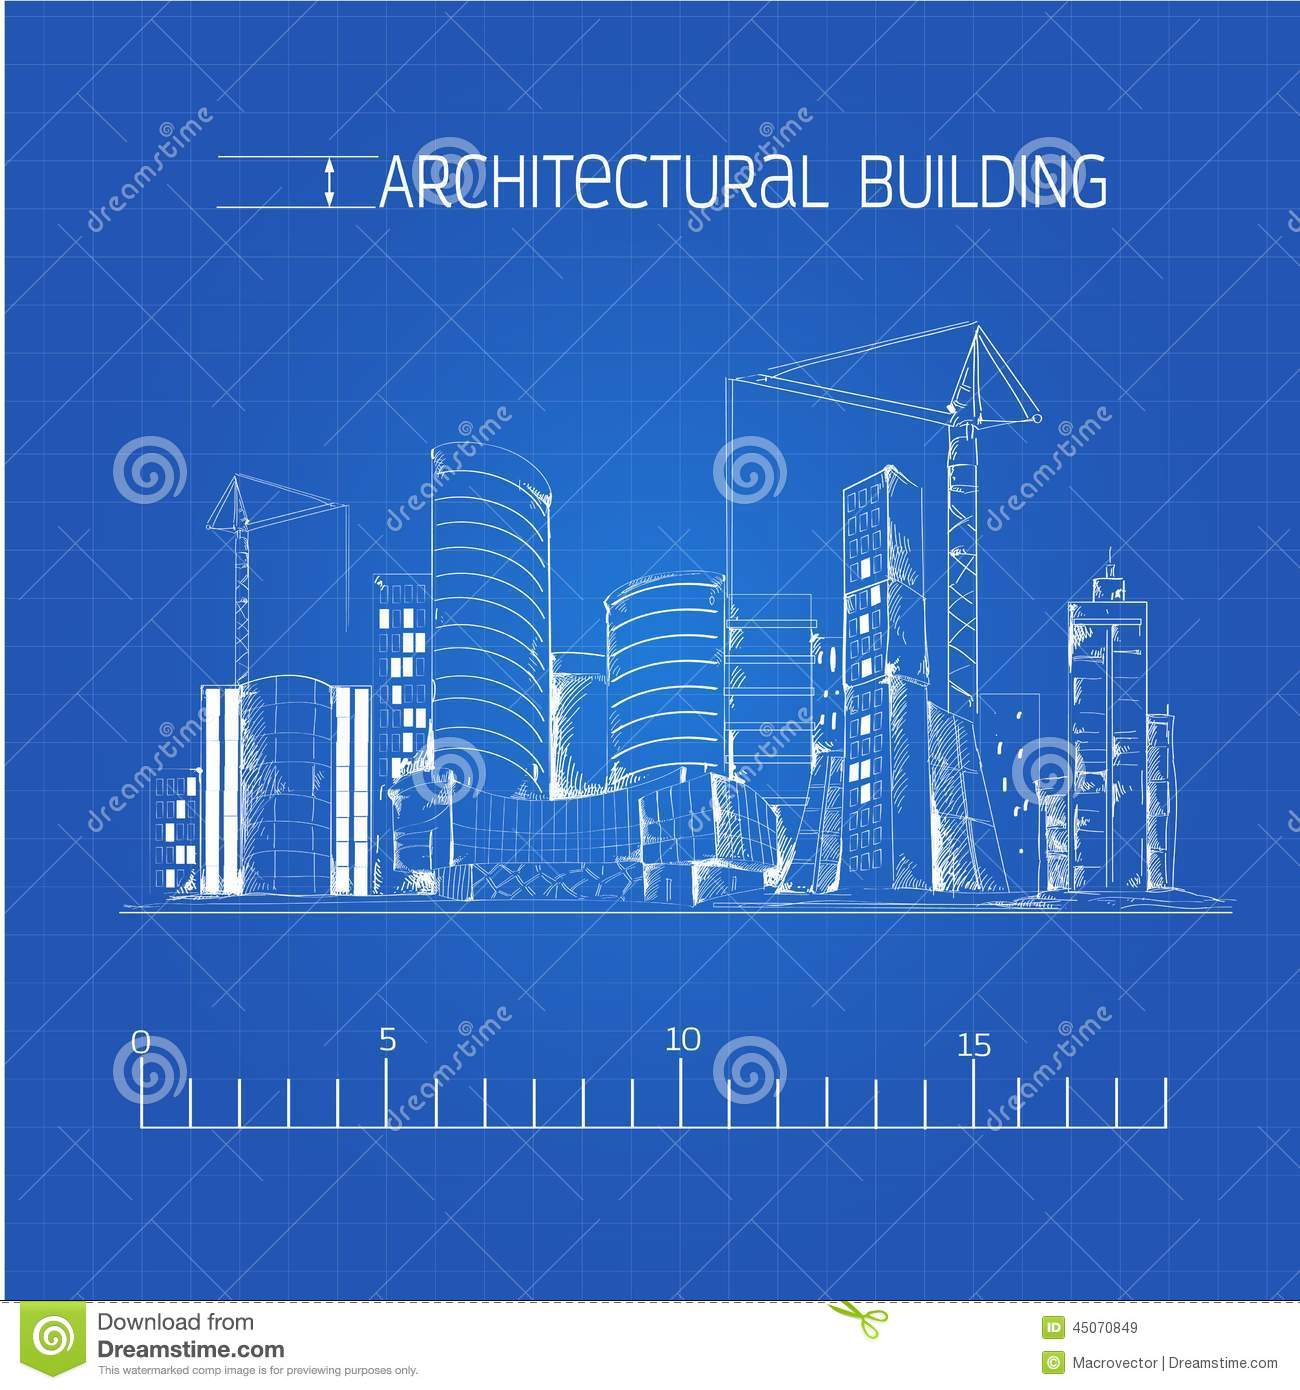 Architectural building blueprint stock vector illustration of download architectural building blueprint stock vector illustration of aesthetic blueprint 45070849 malvernweather Images